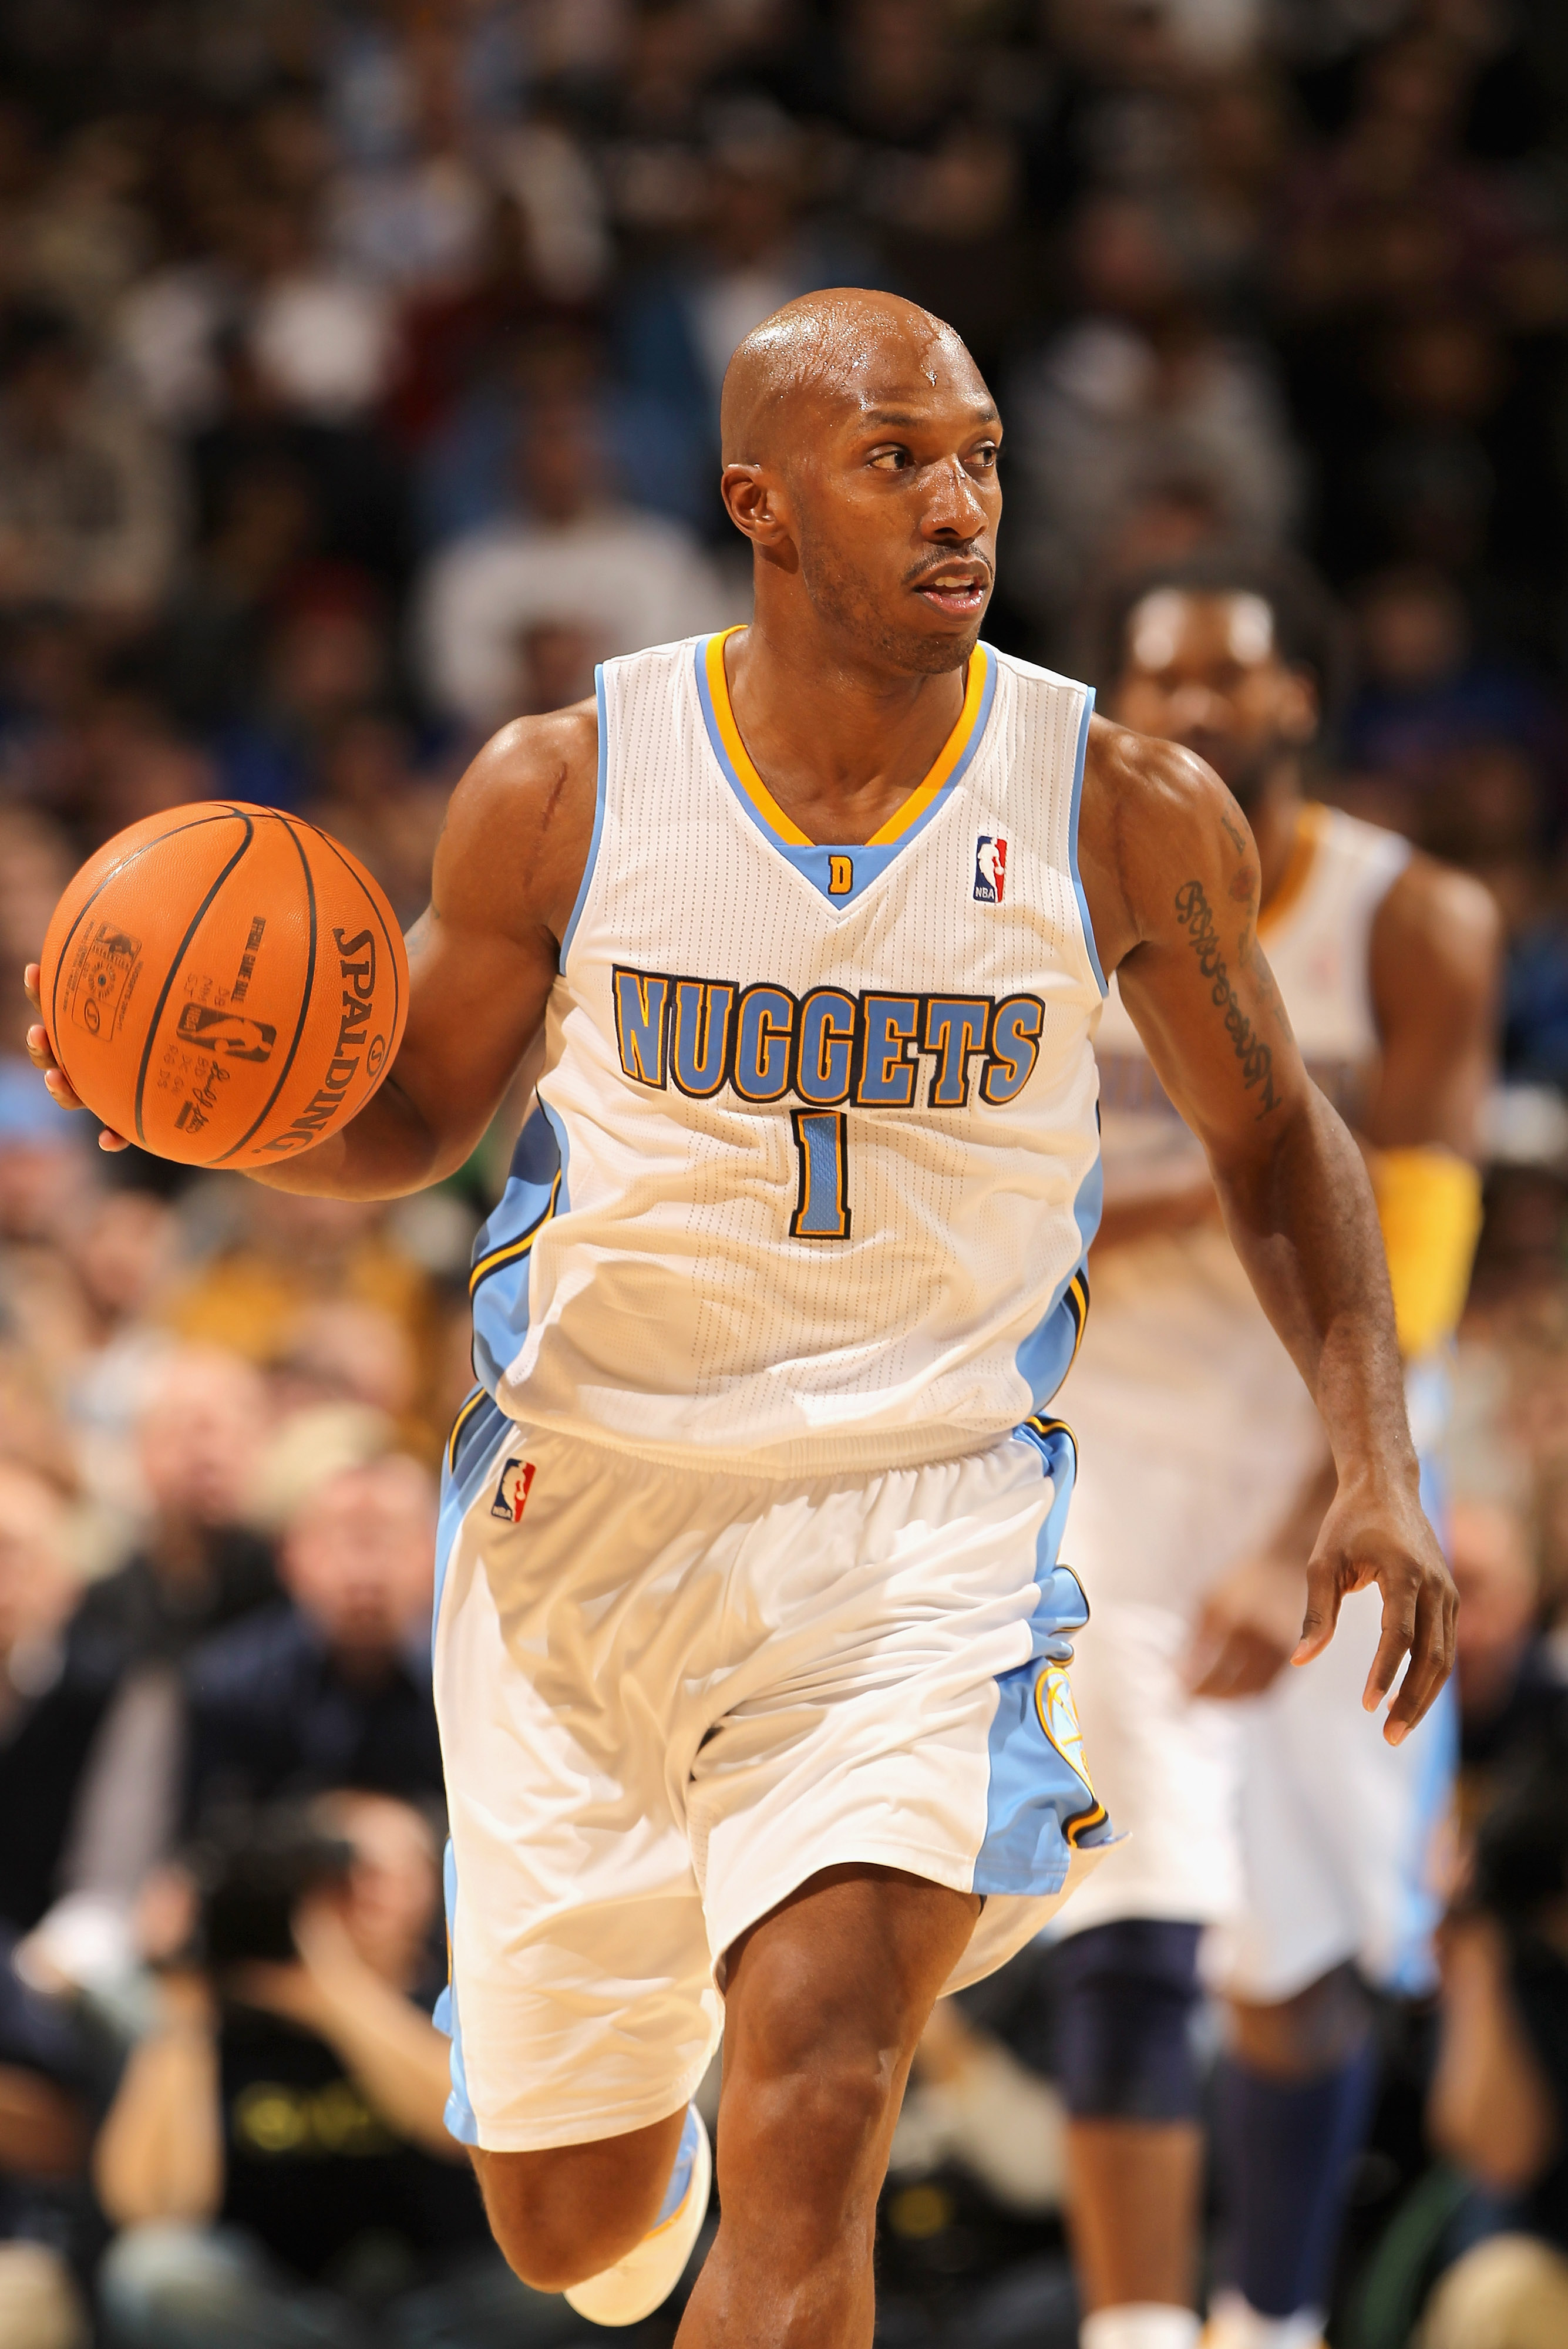 DENVER, CO - JANUARY 13:  Chauncey Billups #1 of the Denver Nuggets dribbles the ball upcourt against the Miami Heat at the Pepsi Center on January 13, 2011 in Denver, Colorado. The Nuggets defeated the Heat 130-102. NOTE TO USER: User expressly acknowled